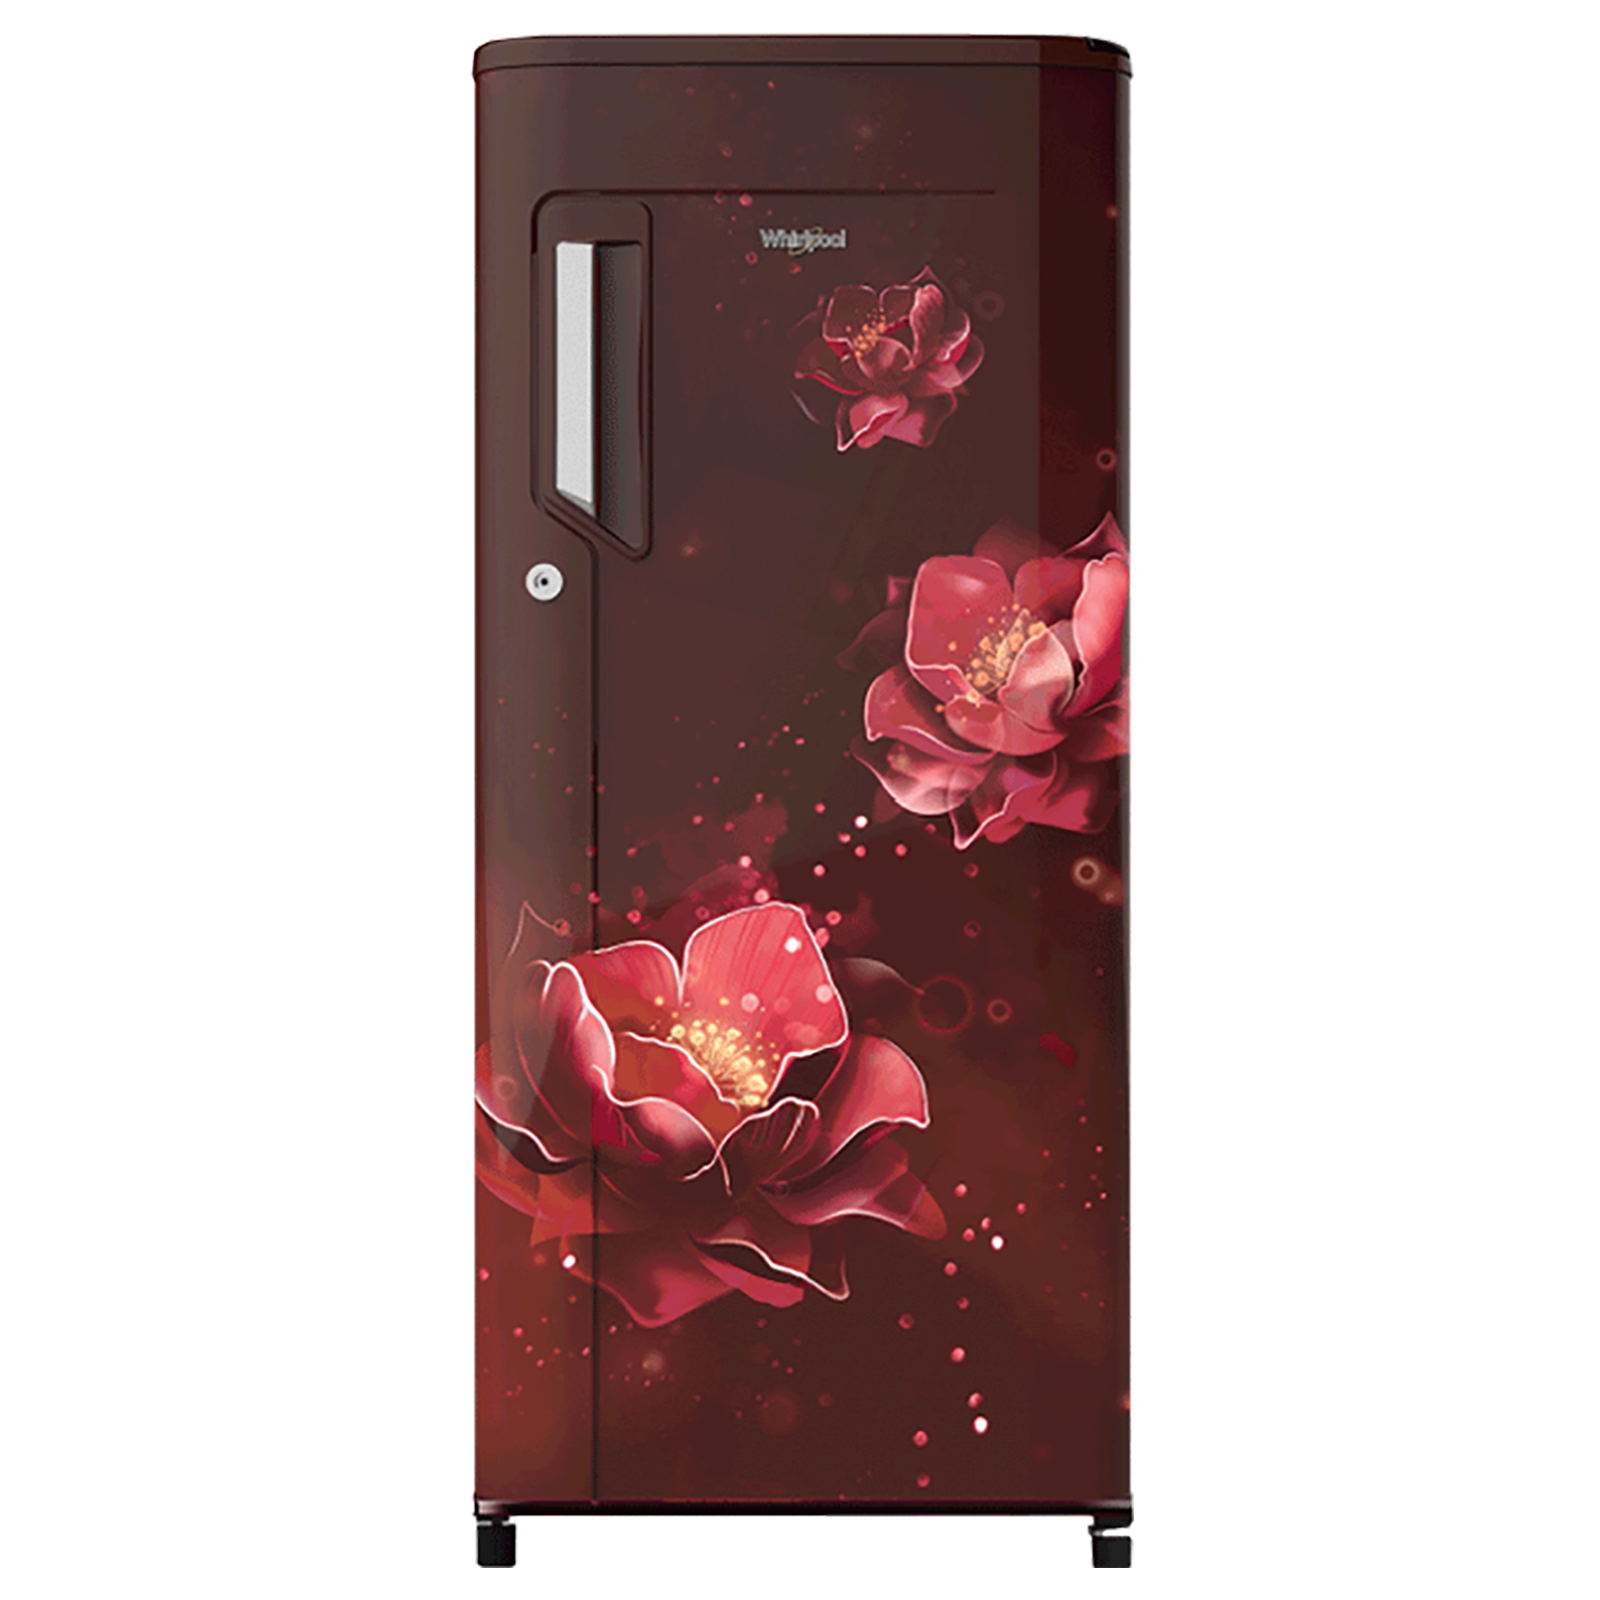 Whirlpool 200 Litres 3 Star Direct Cool Single Door Refrigerator (Stabilizer Free Operation, 215 IMPC PRM, Wine Abyss)_1